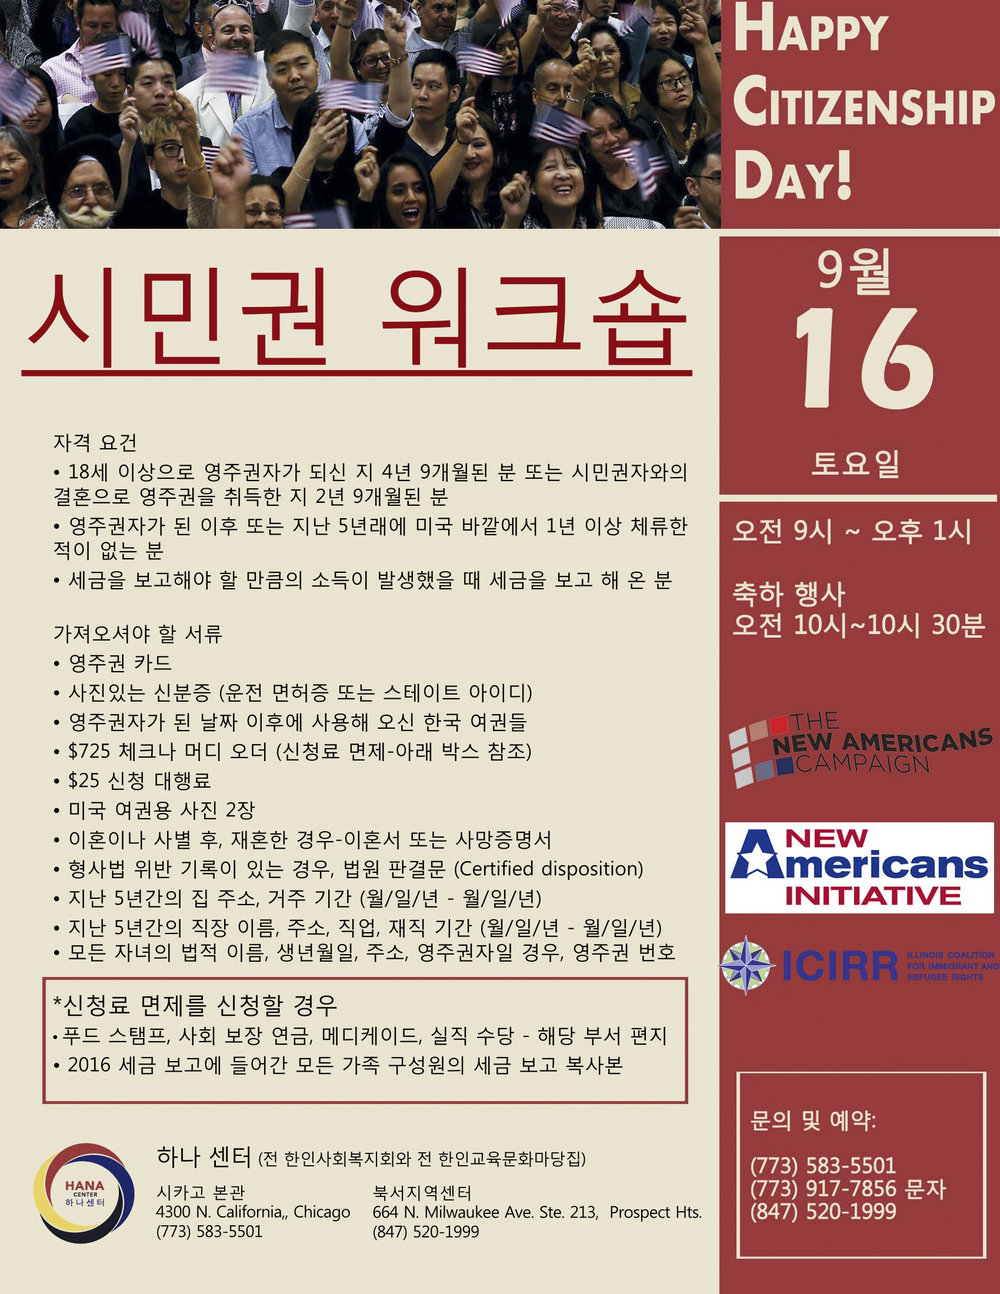 Citizenship Workshop Flyer_kor.jpg